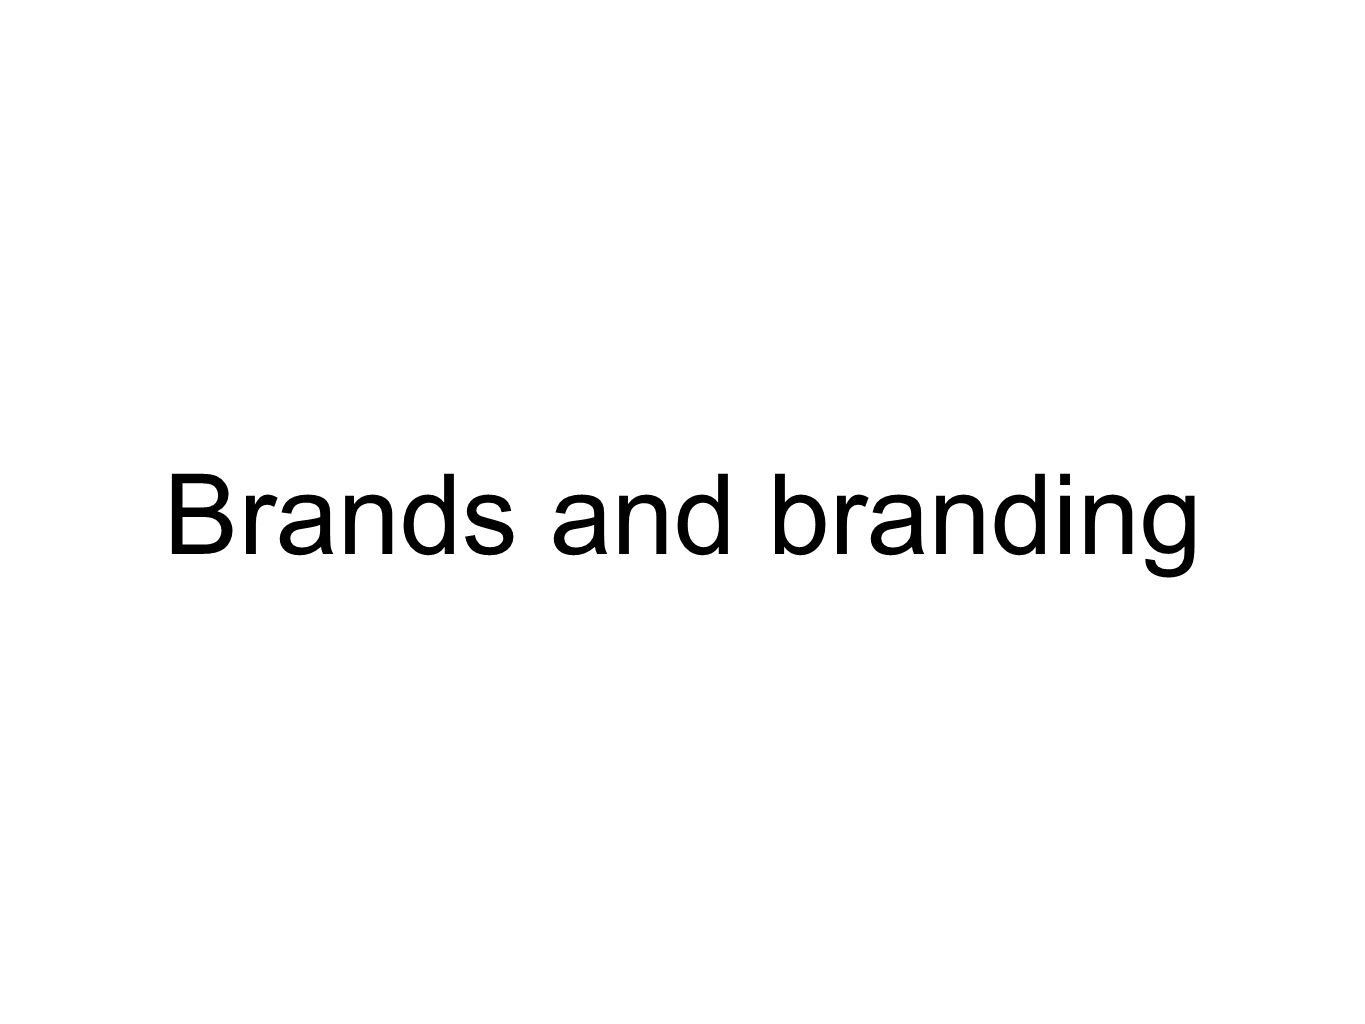 Brands and branding what a brand isnt the logo or any other type 1 brands and branding buycottarizona Choice Image